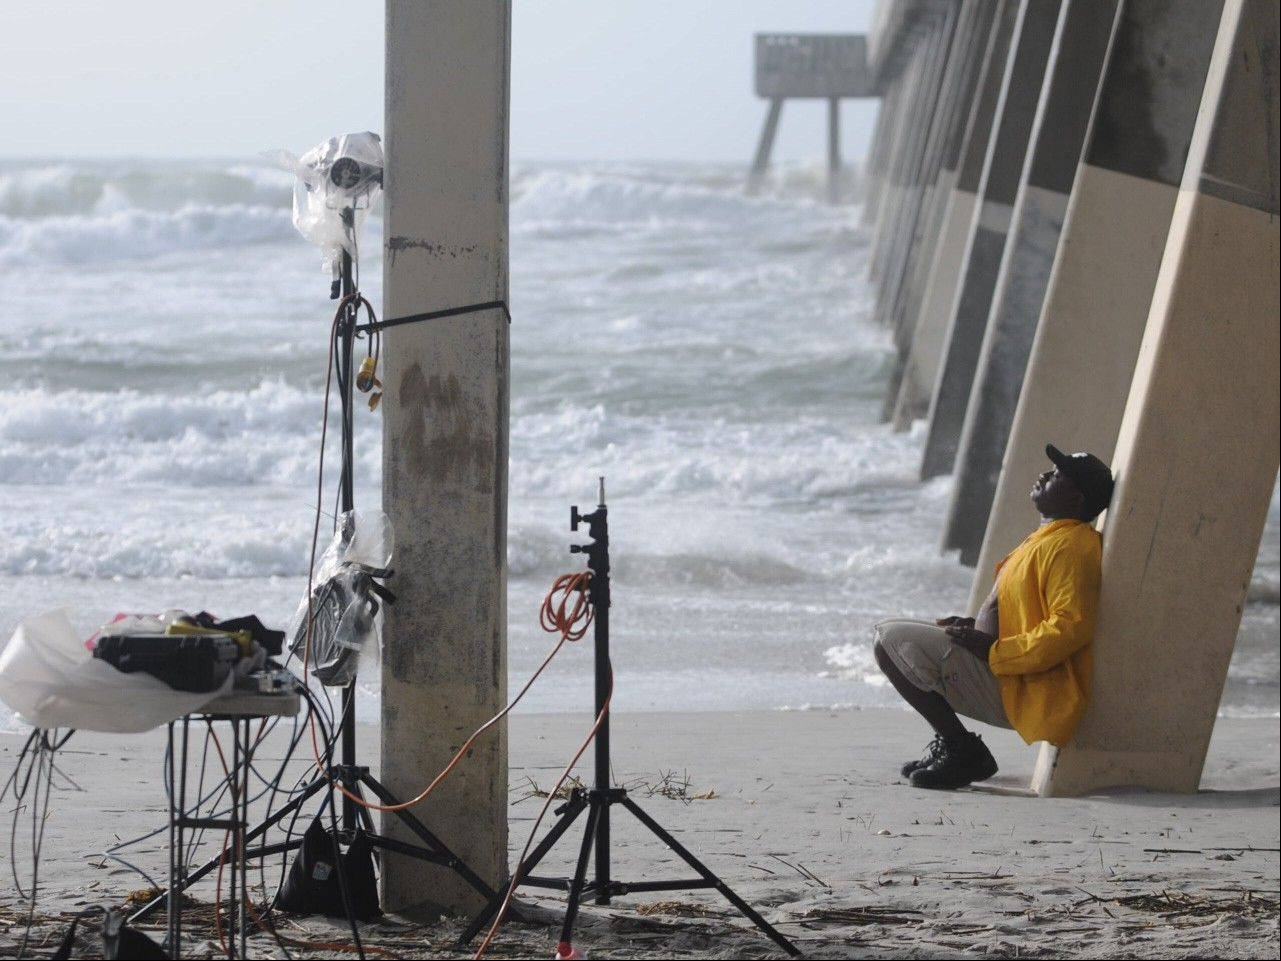 Paul Jackson with CNN�s storm coverage team waits Friday to do a live shot under the Johnnie Mercer�s Pier in Wrightsville Beach, N.C. Tropical Storm Andrea is bringing rain and wind to Carolinas, causing thousands to lose power and streams to swell. The storm was racing through South Carolina early Friday and was expected to move into eastern North Carolina by midday.